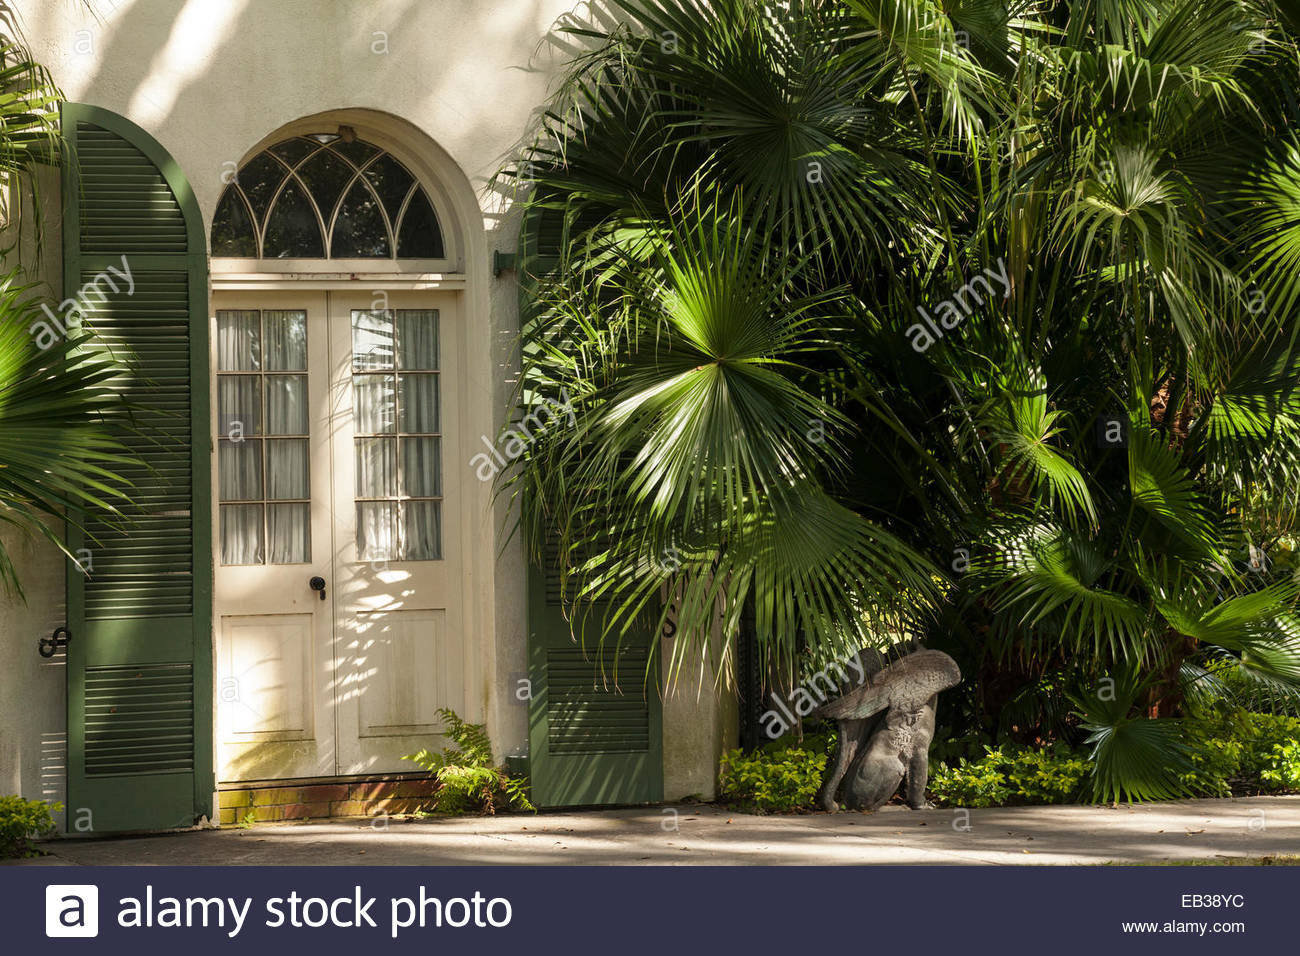 An arched door of the hexagonal guest house at the Houmas House Plantation and Gardens. - Stock Image